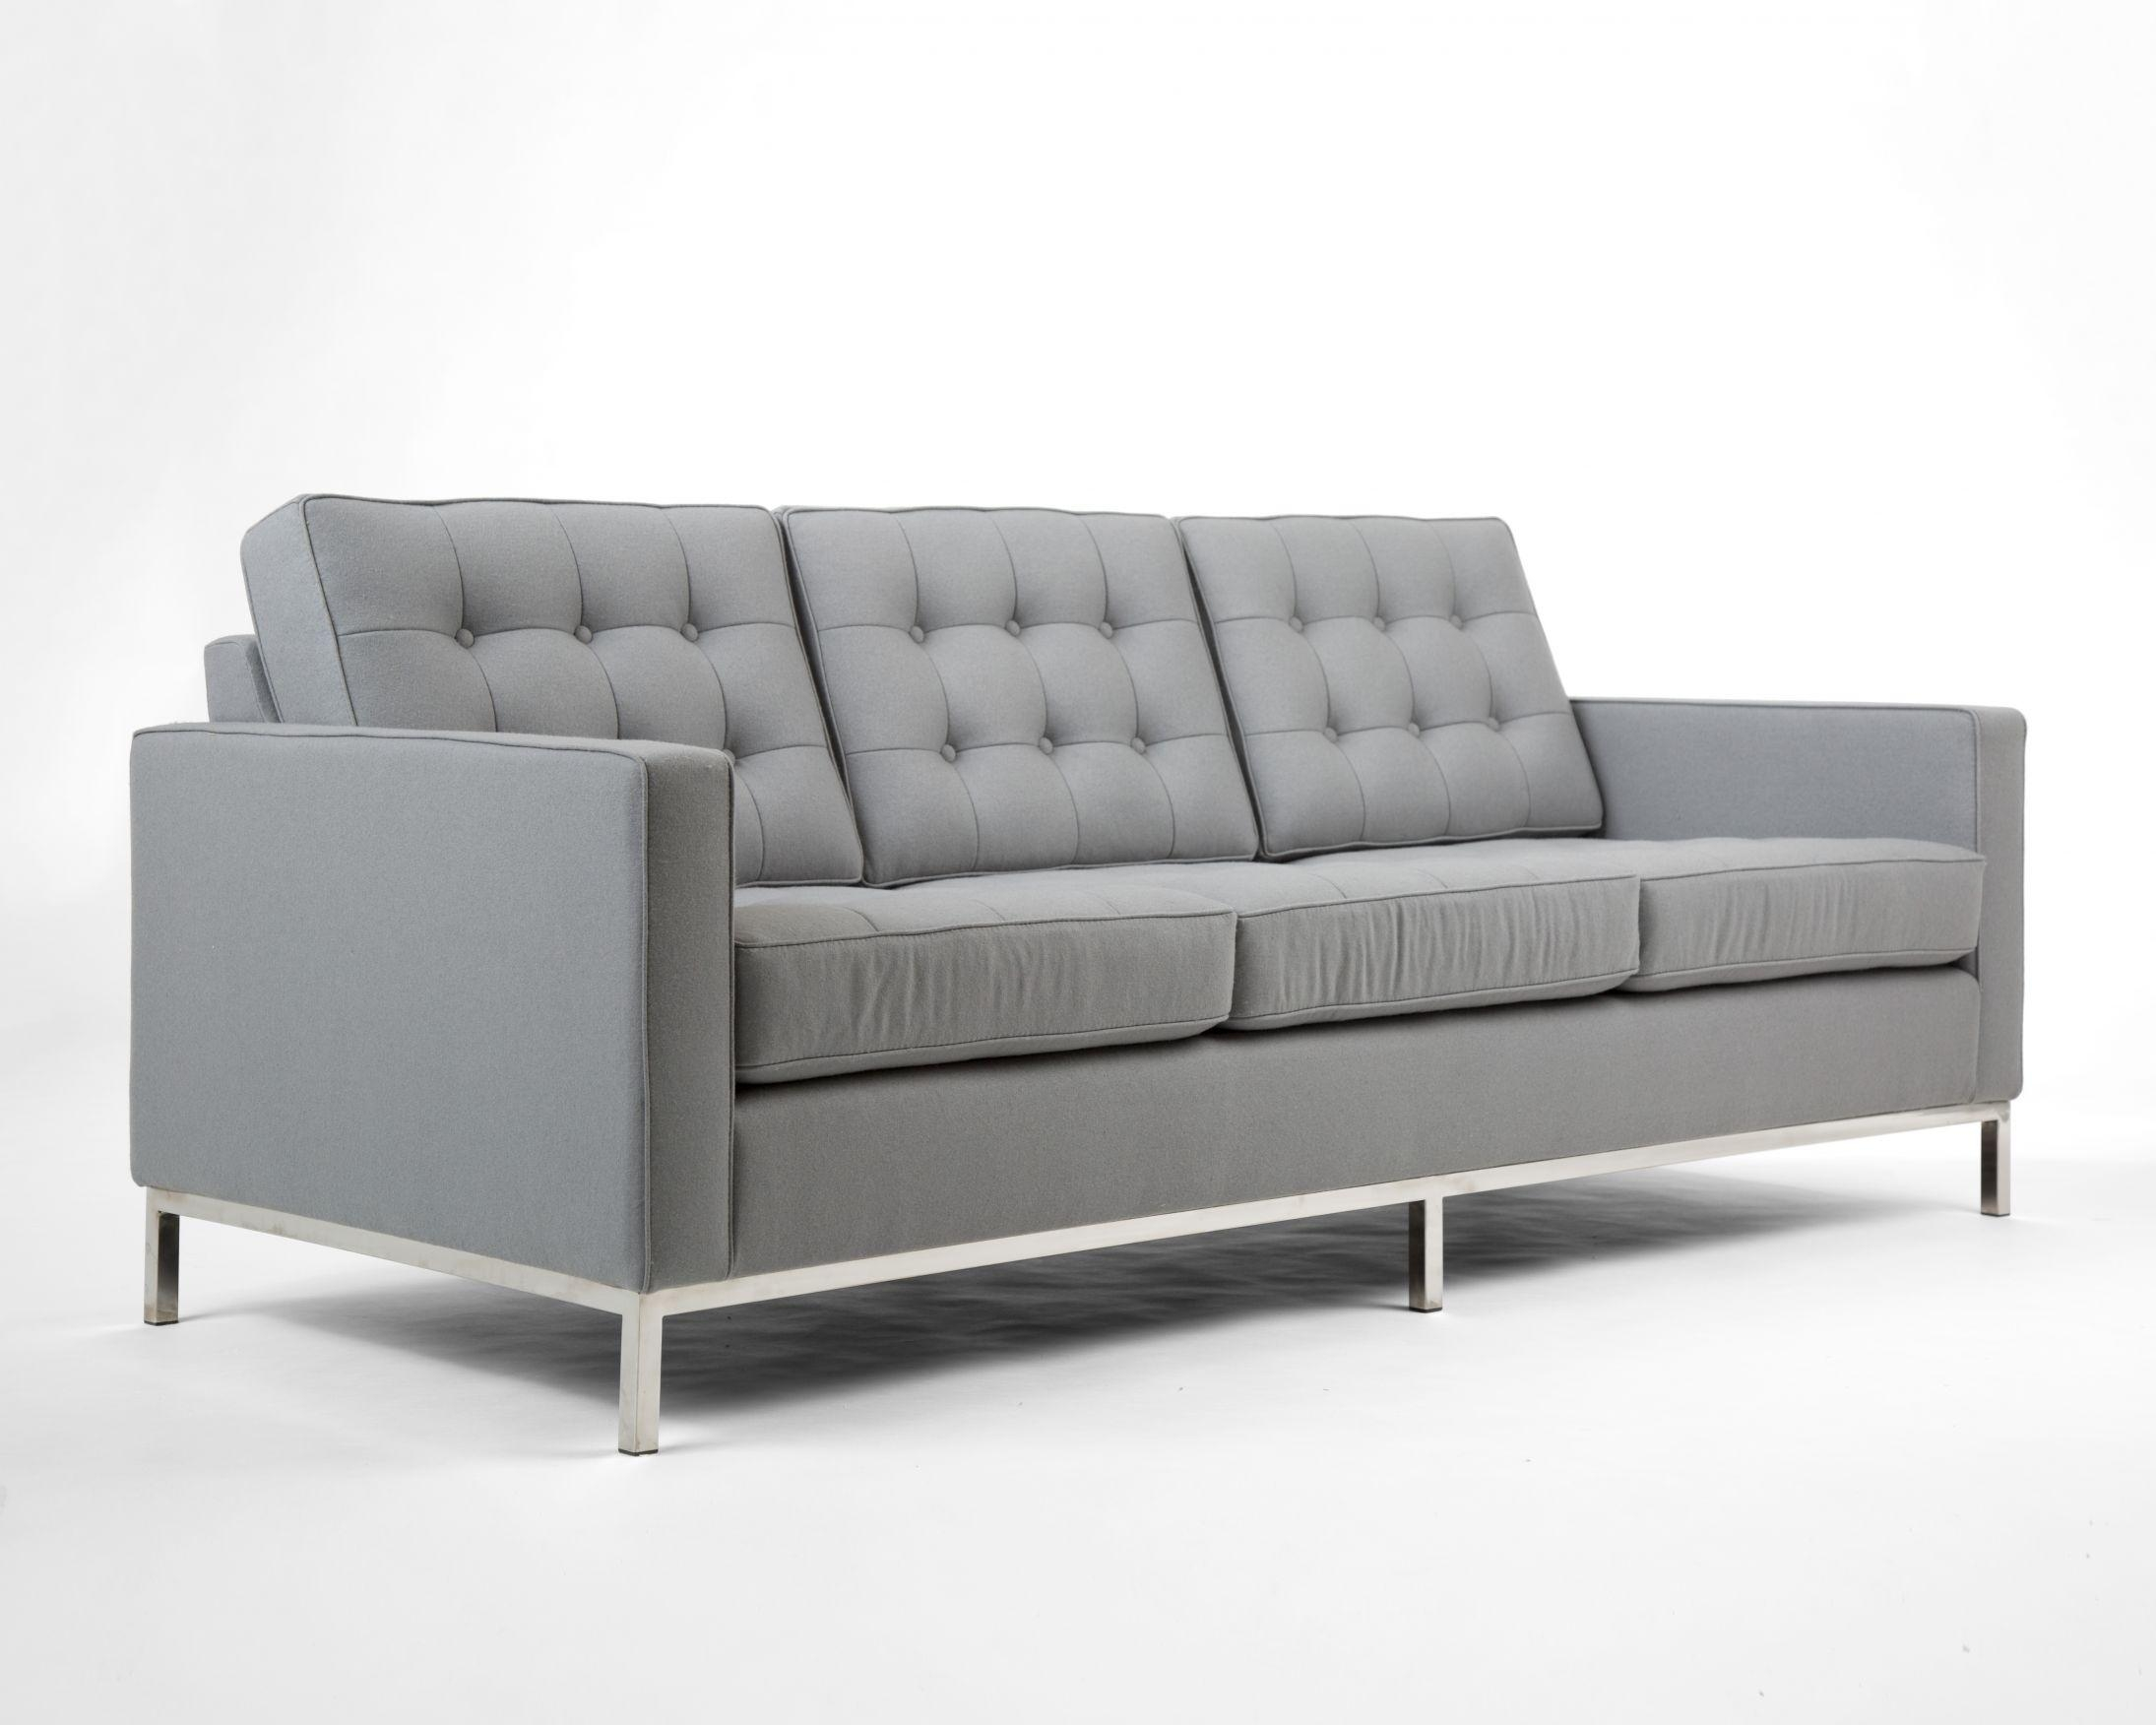 Florence Sofa | Reproduction | Mid Century Modern With Regard To Florence Sofas (Image 14 of 20)